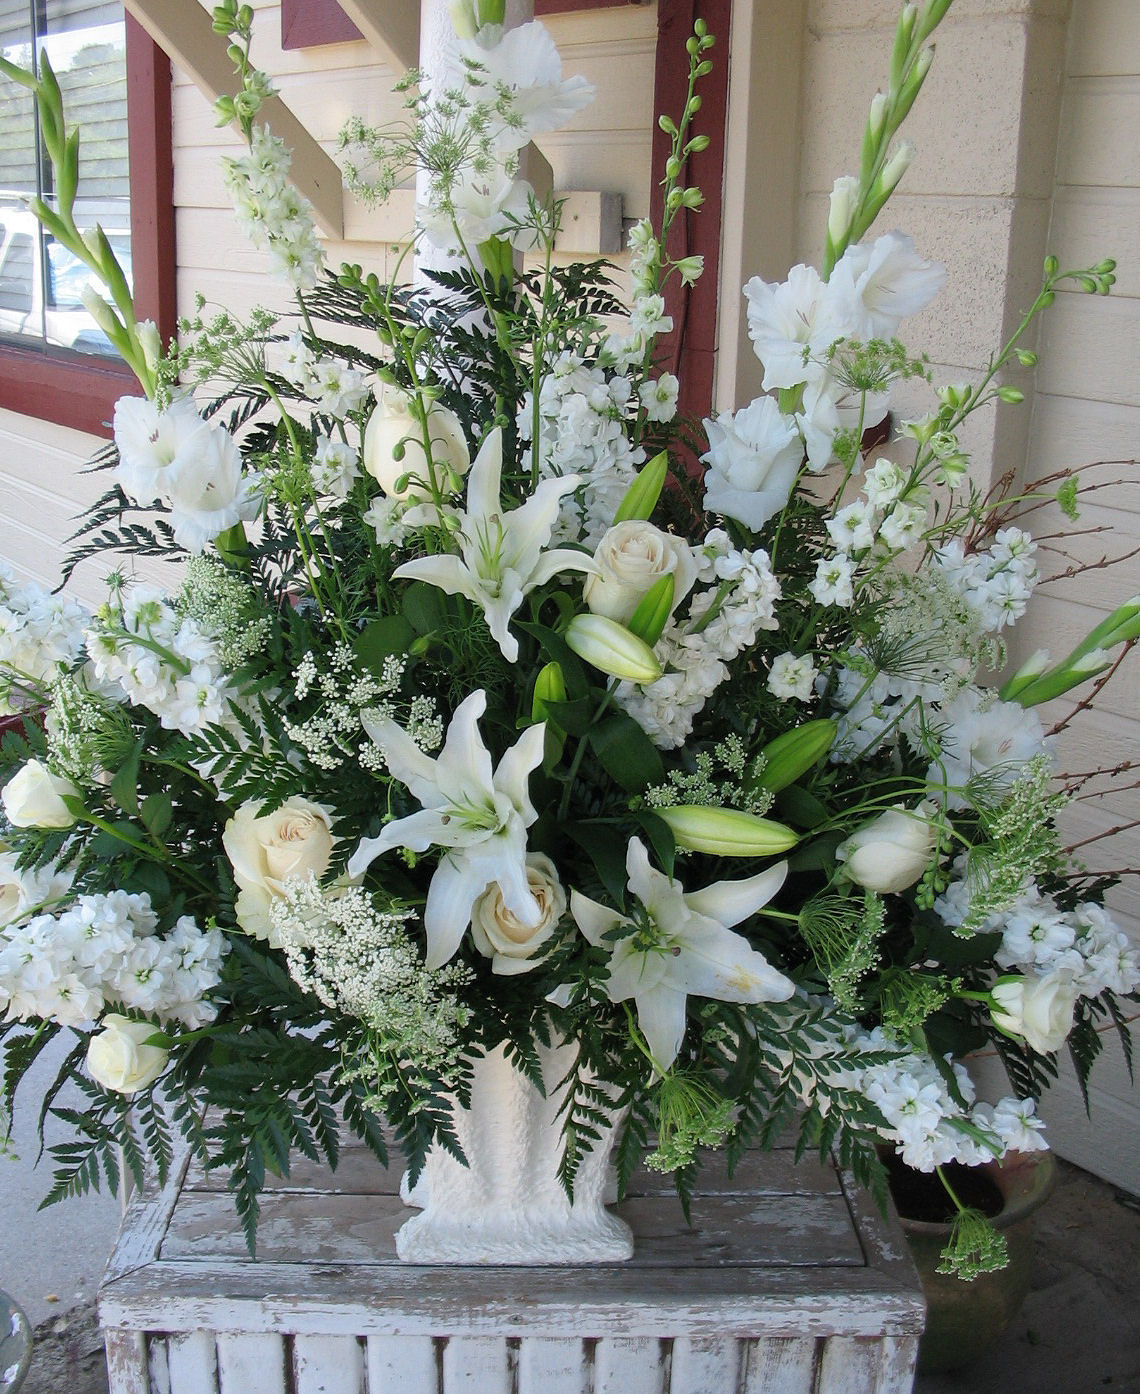 Pictures Of Wedding Altar Flowers: Wedding. Romance. Party. Happiness Moment. Ideas. Sharing